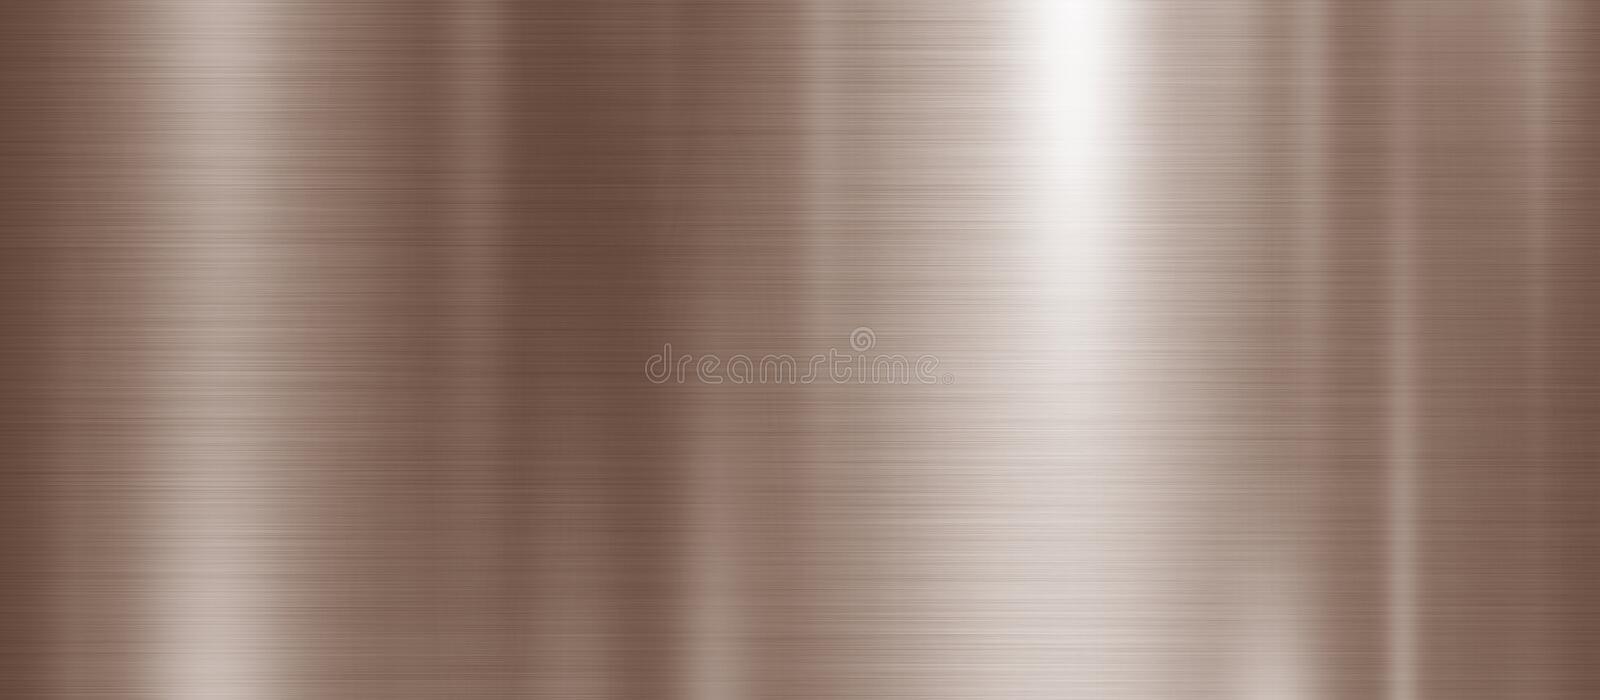 Copper metal texture background design royalty free stock photography